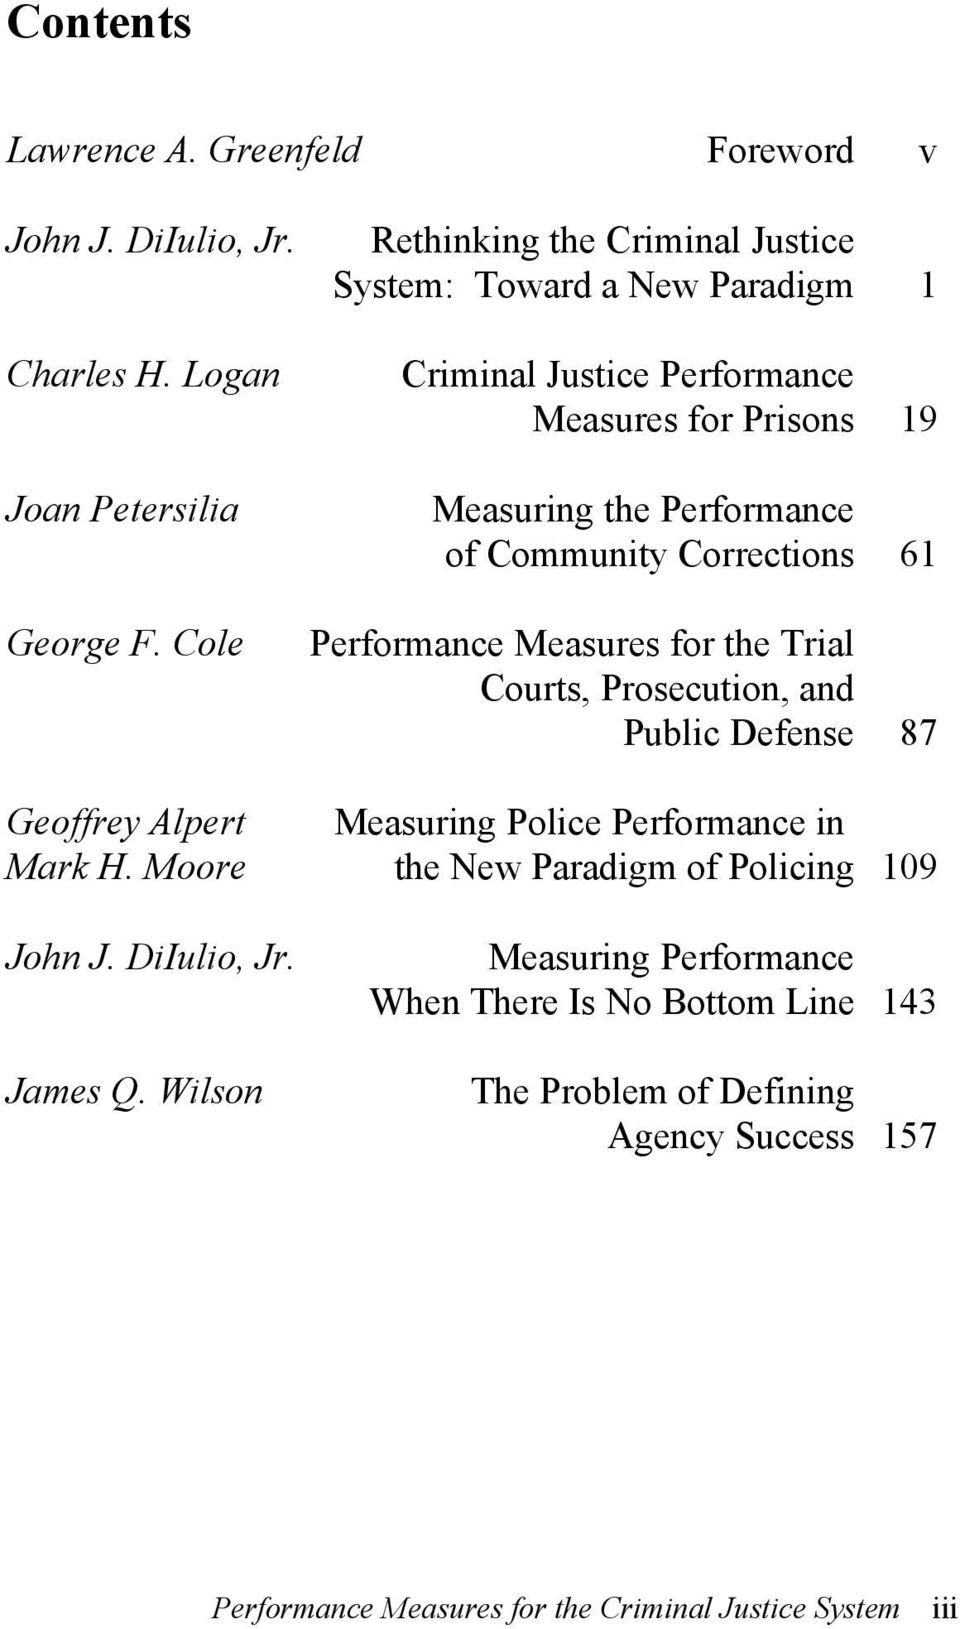 Corrections 61 Performance Measures for the Trial Courts, Prosecution, and Public Defense 87 Geoffrey Alpert Measuring Police Performance in Mark H.